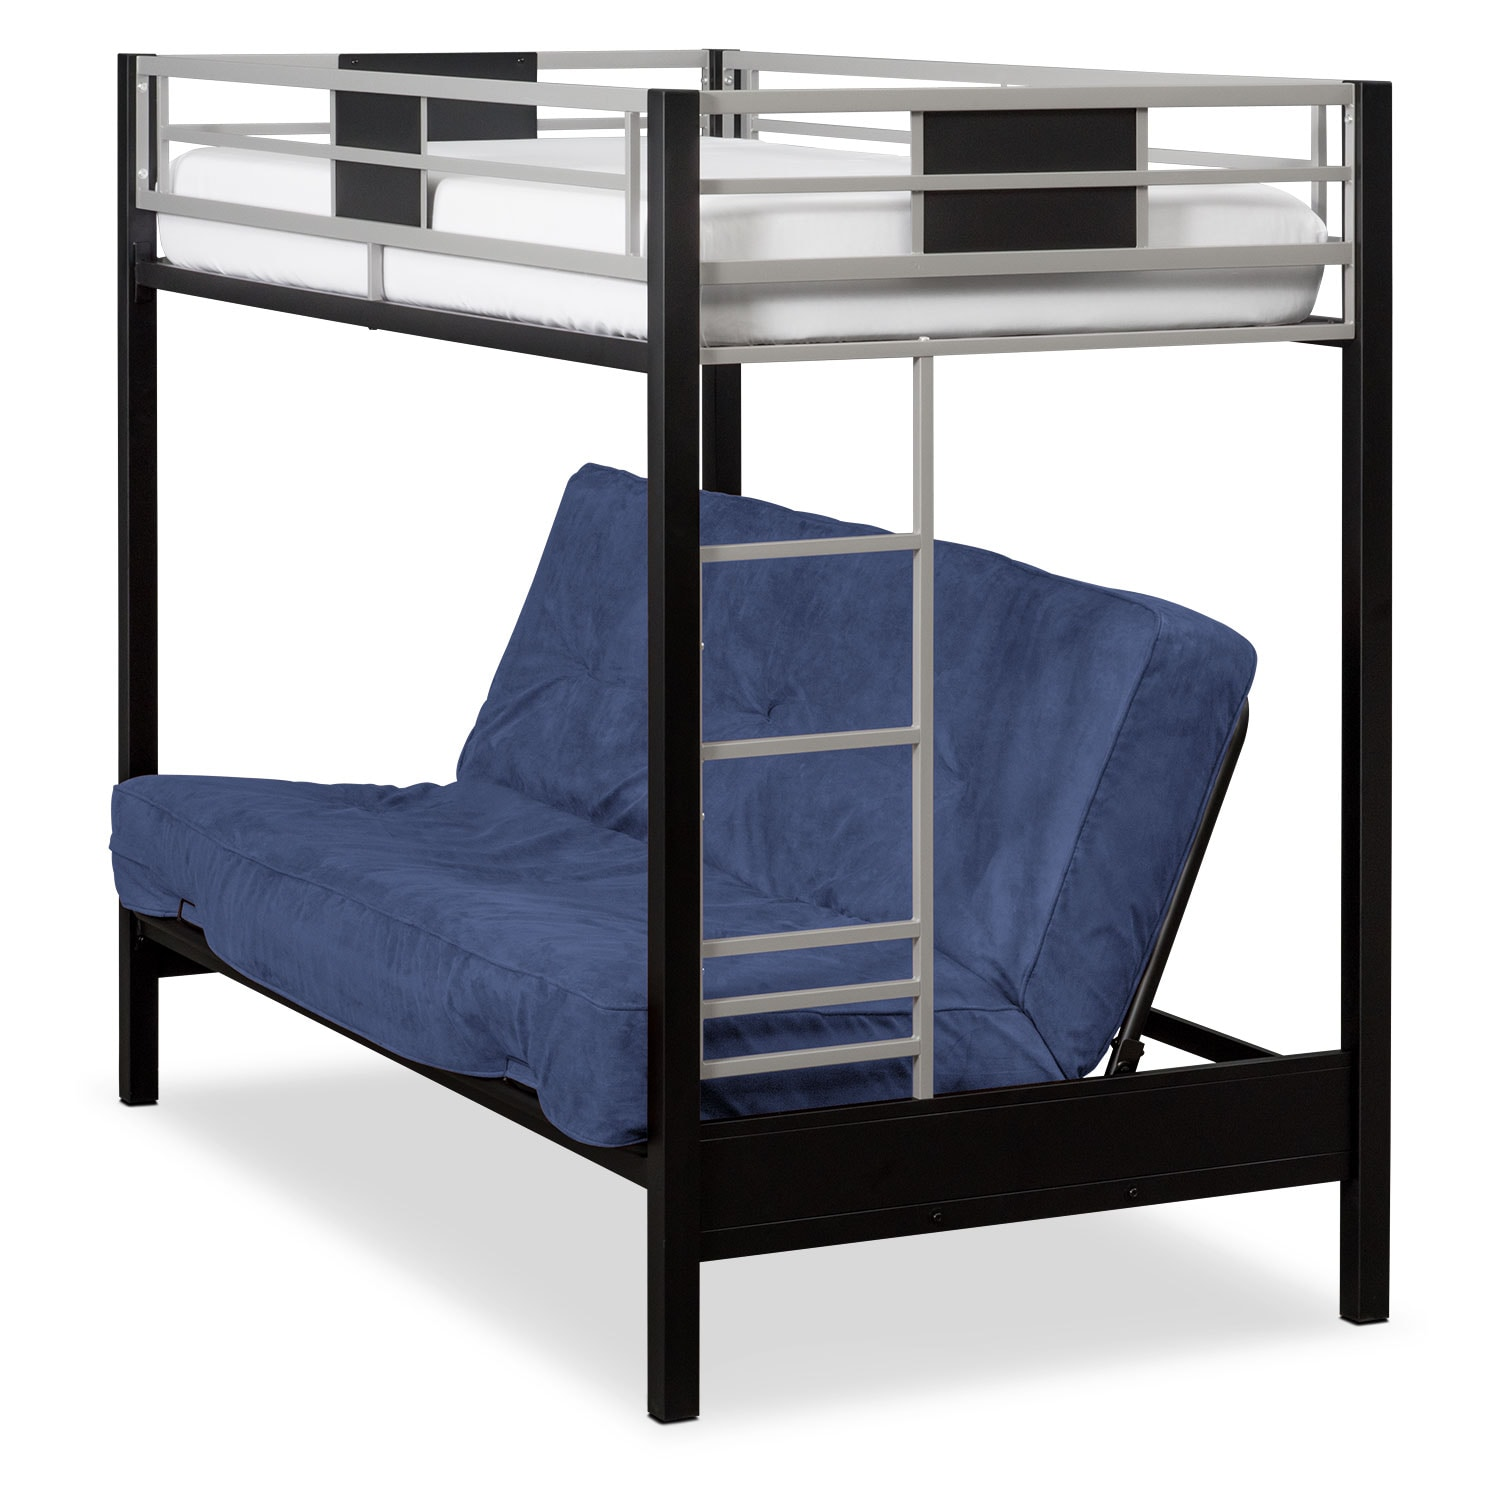 Bedroom Furniture - Samba Youth Twin/Full Futon Bunk Bed with Blue Futon Mattress